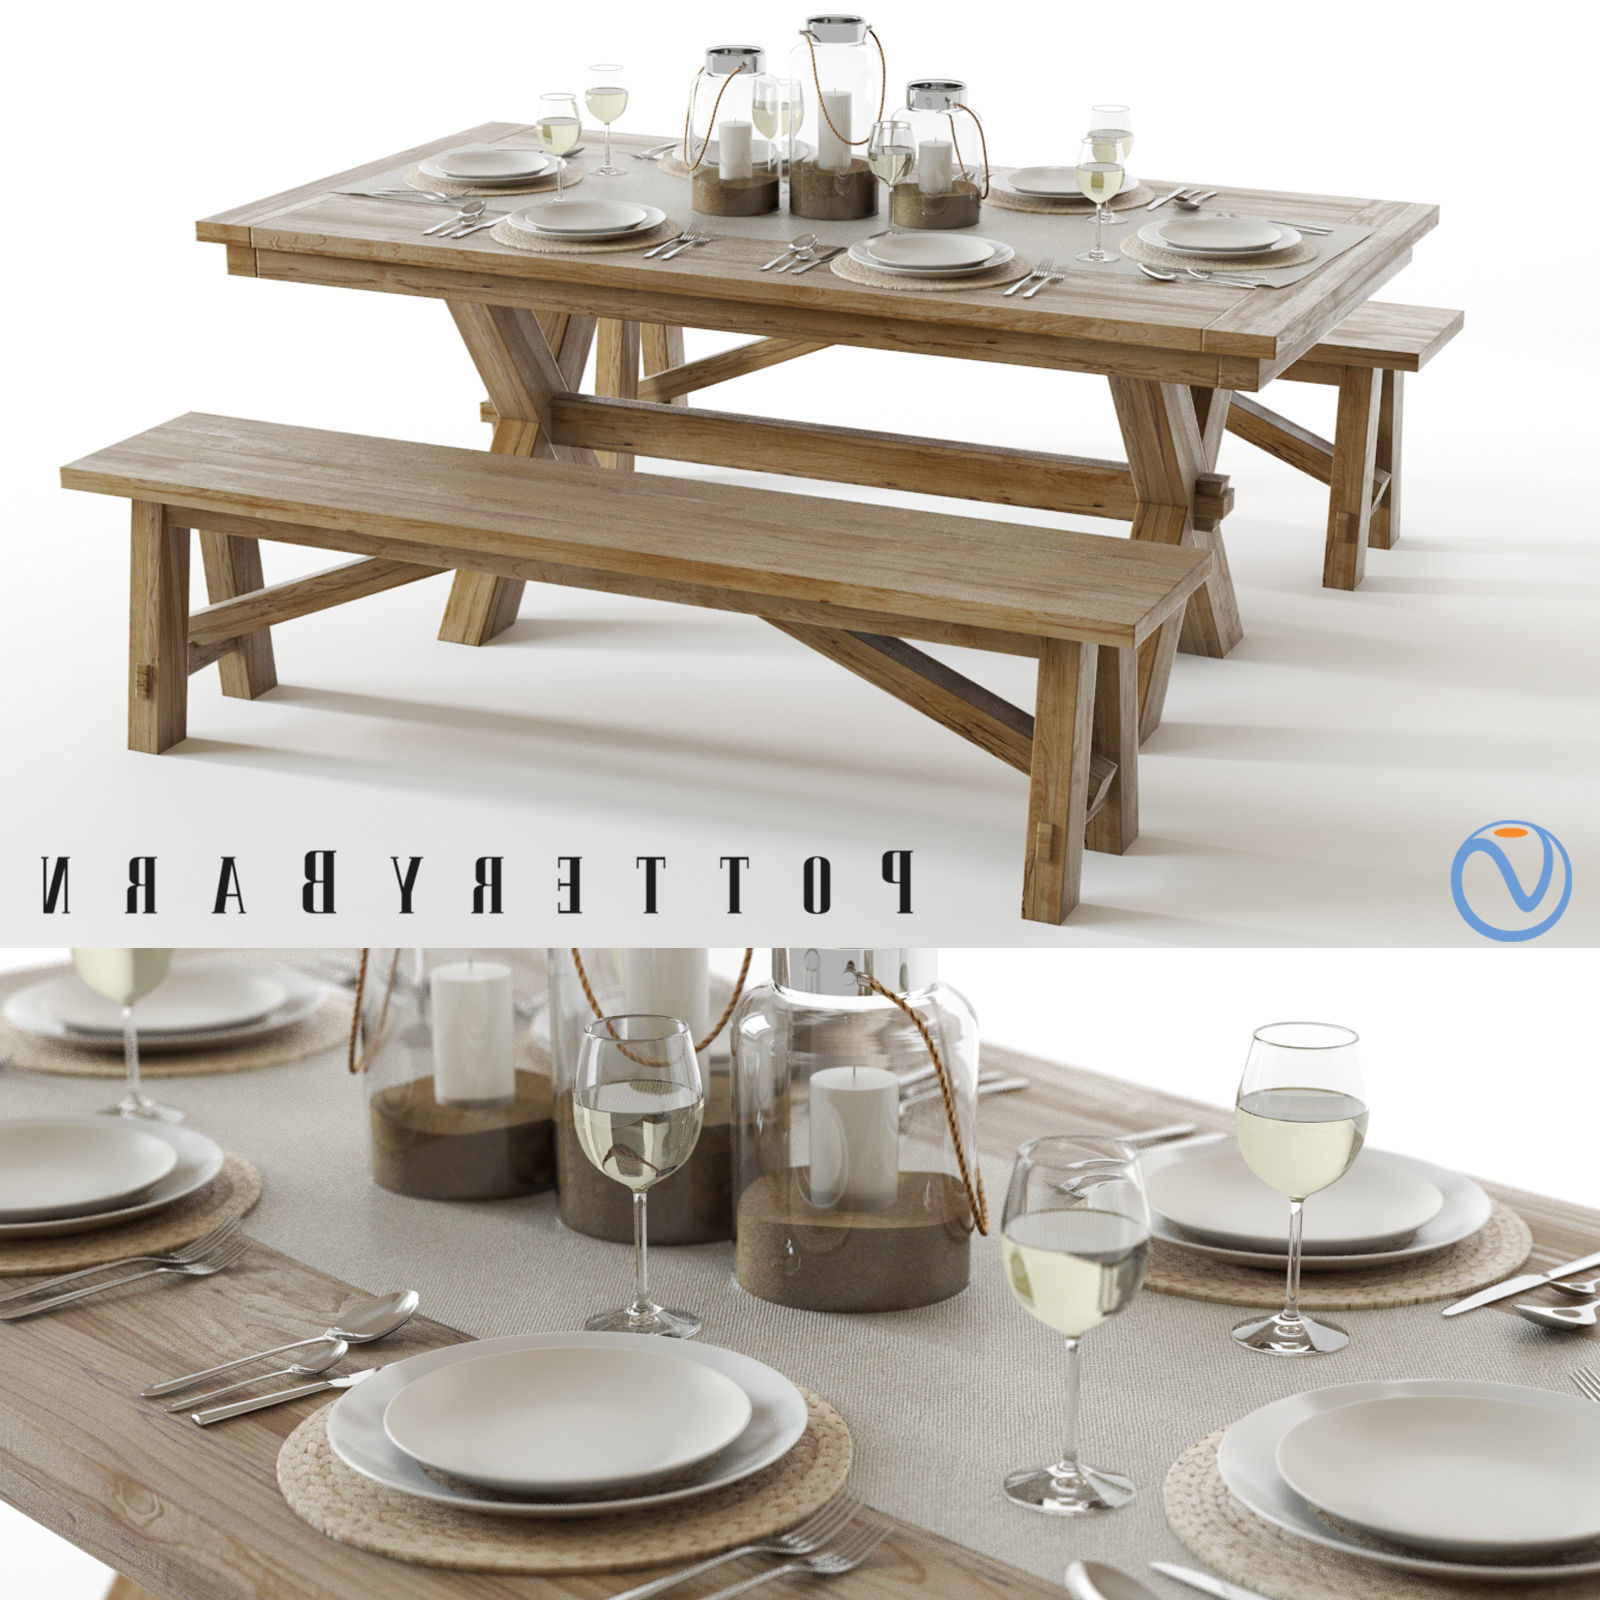 Newest Seadrift Toscana Dining Tables intended for Pottery Barn Toscana Set